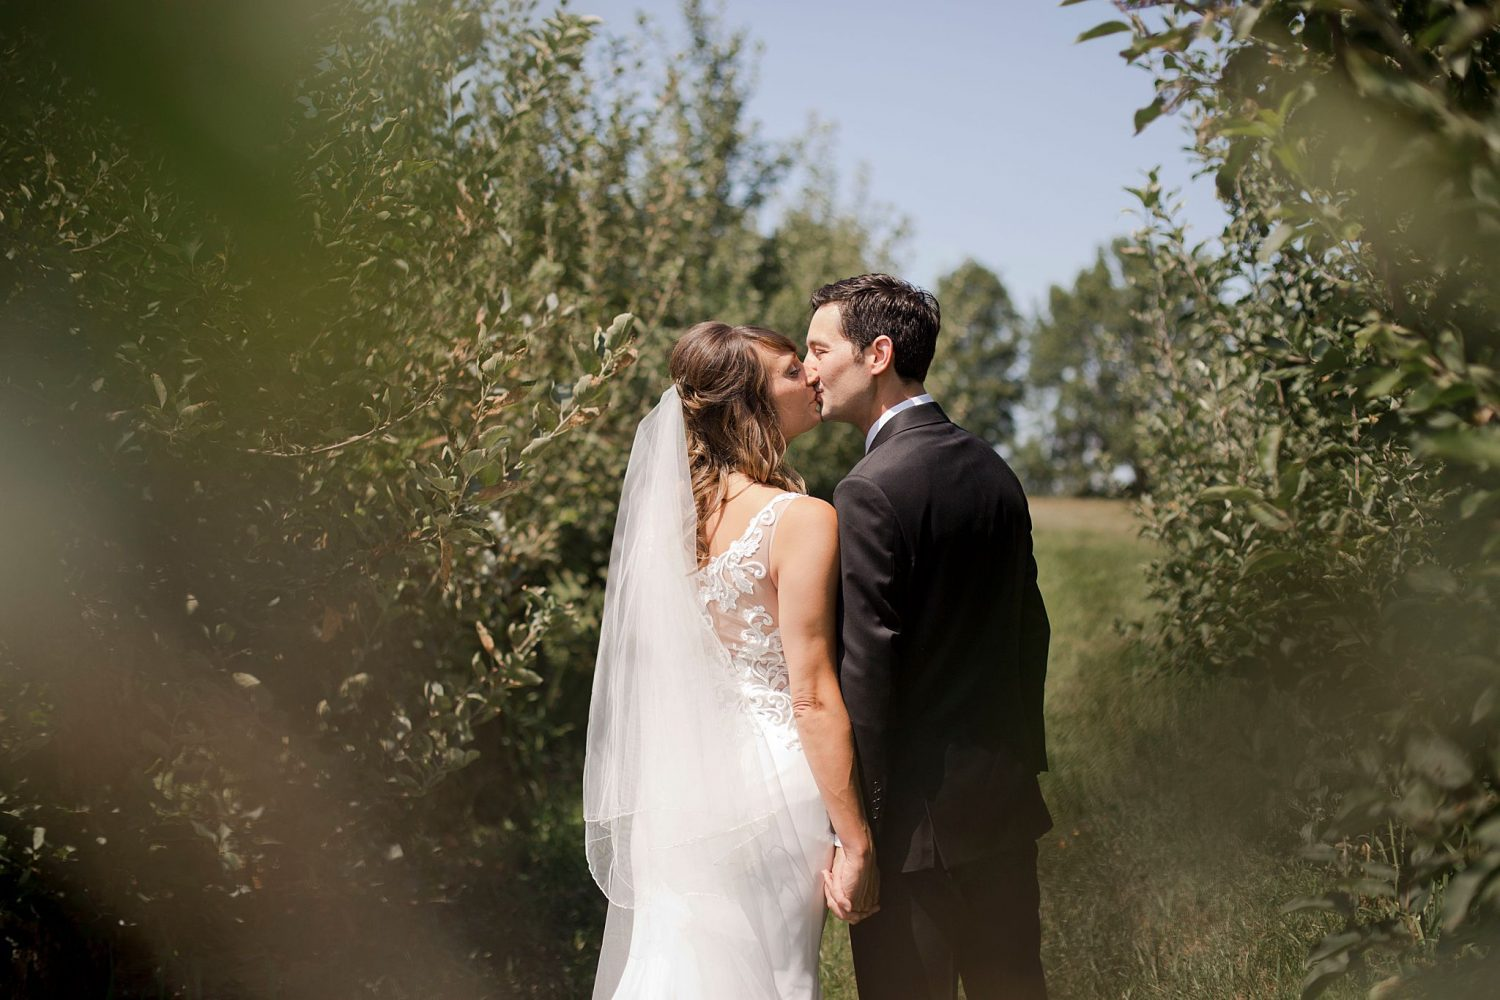 Bride and groom pose together in the orchard on the property of Rapid Creek Cidery in Iowa City. They lean in for a kiss with their backs facing the camera.